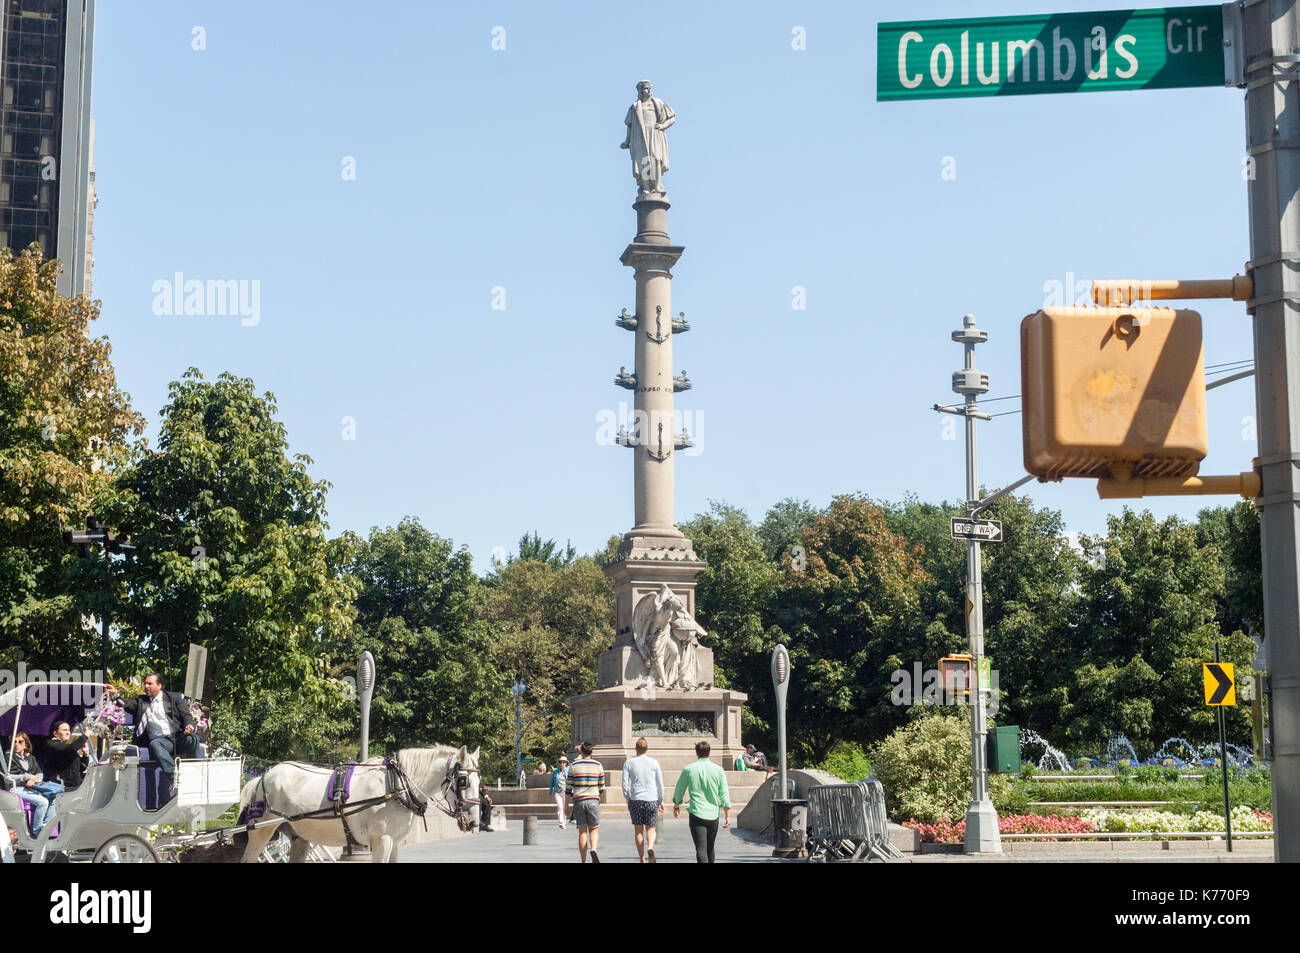 The statue of Christopher Columbus stands in Columbus Circle in New York on Sunday, September 10, 2017. New York Stock Photo